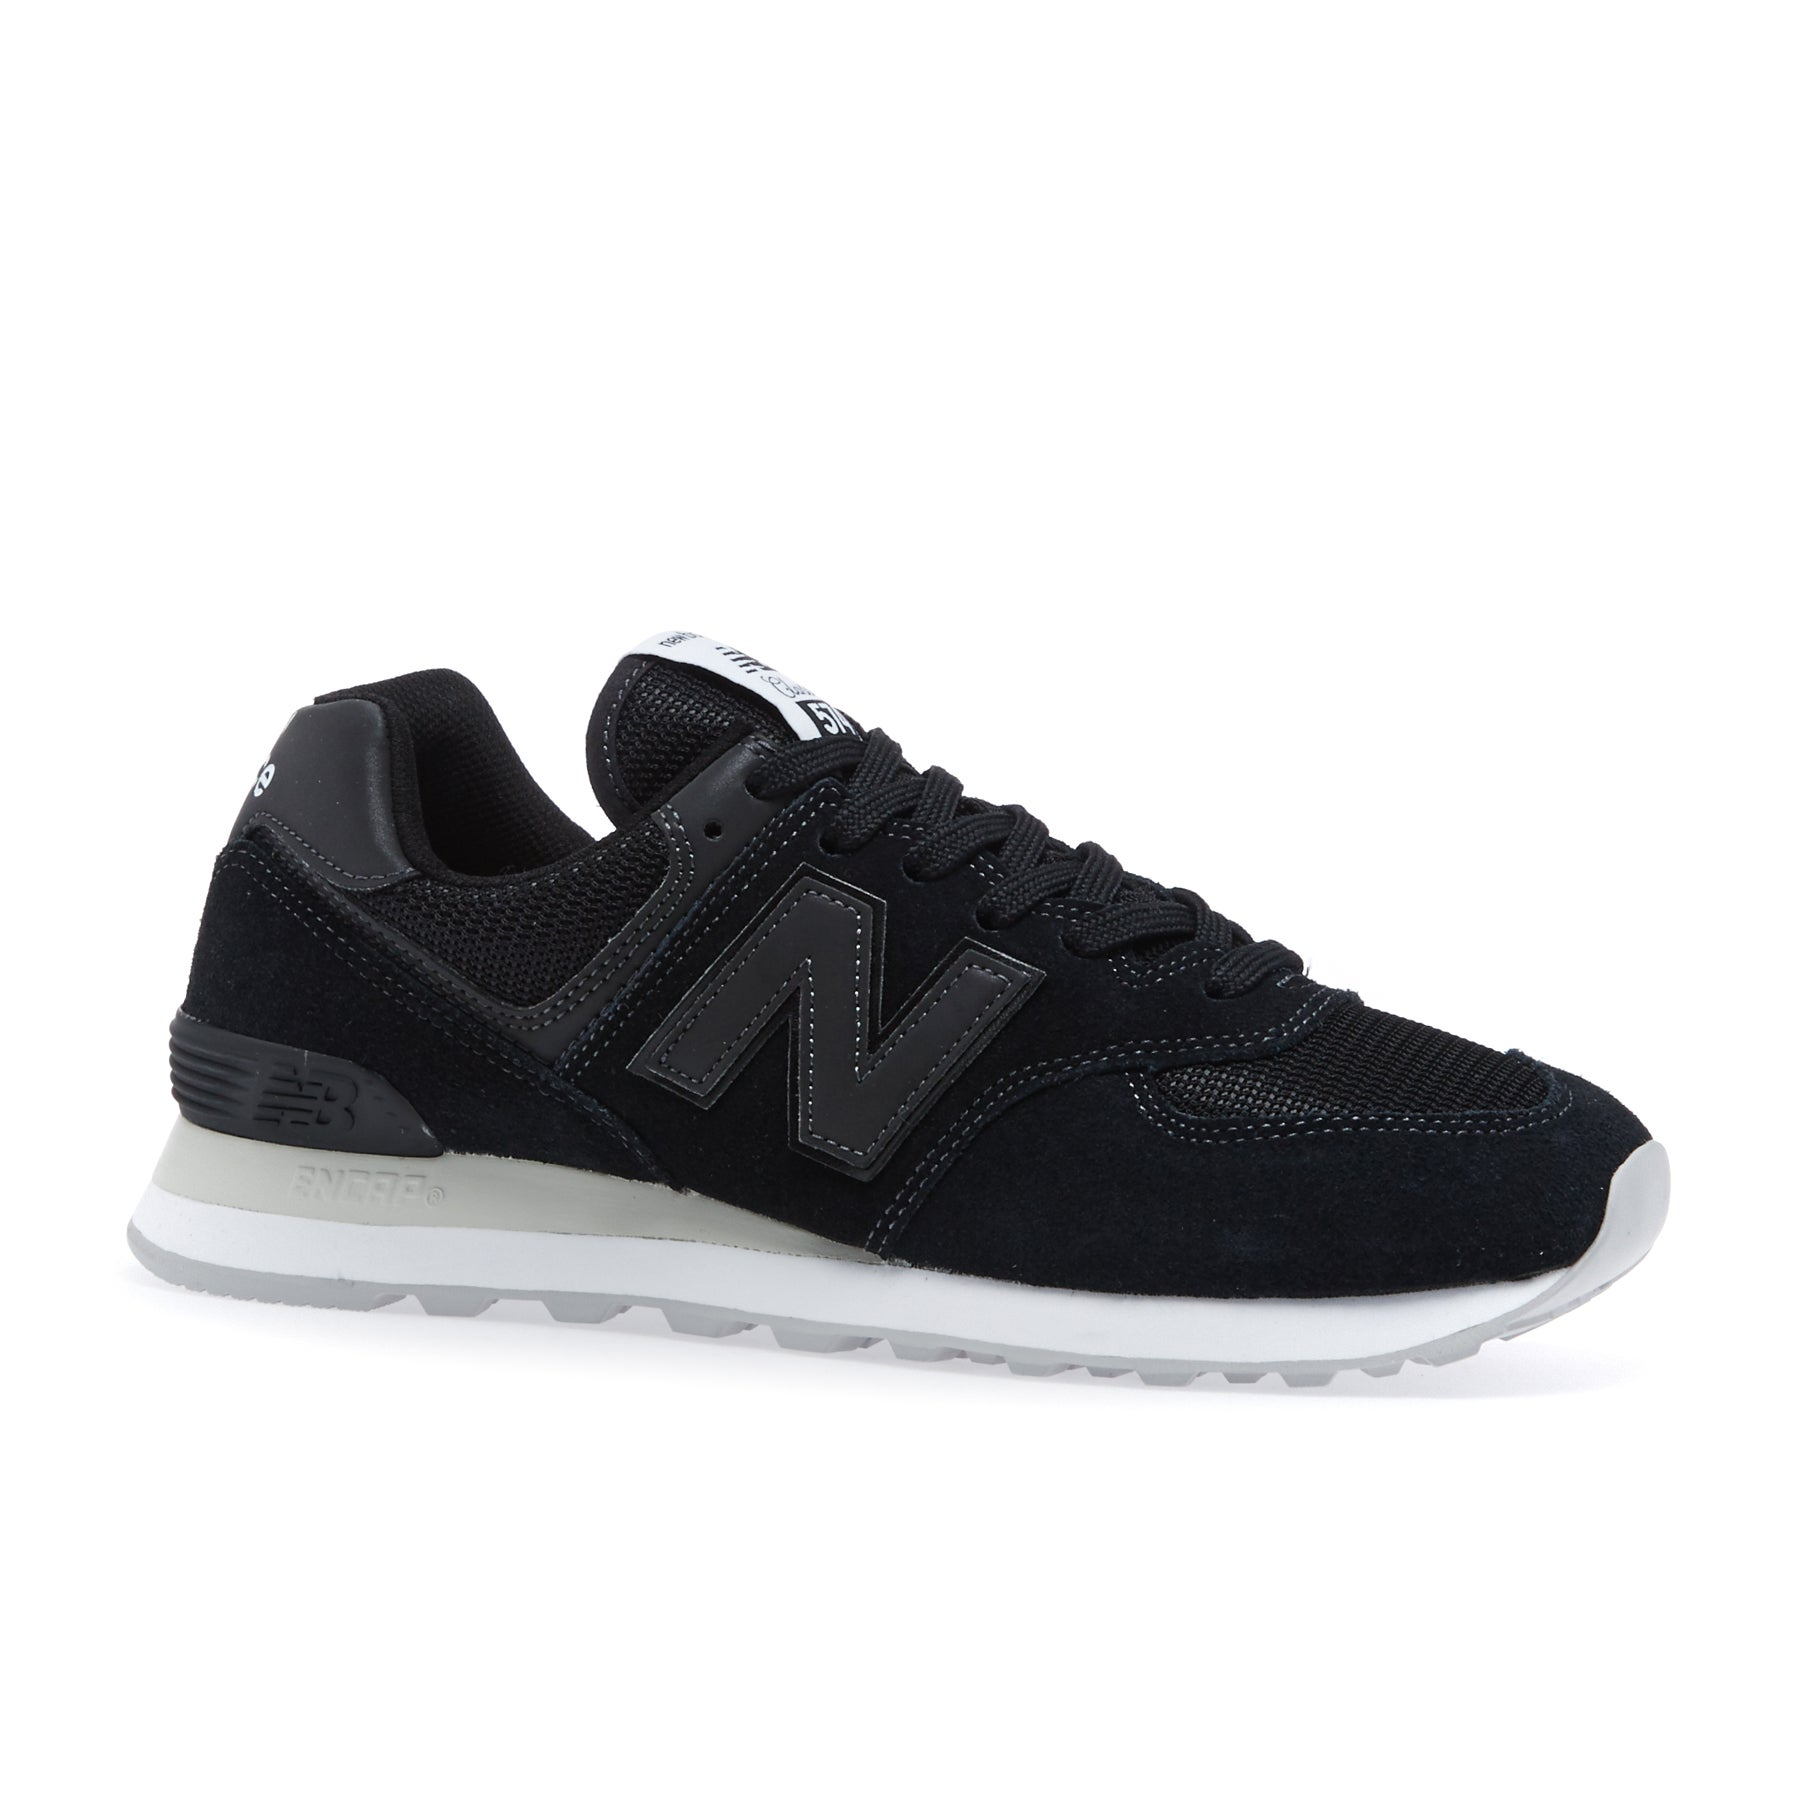 New Balance Ml574 Shoes - Black